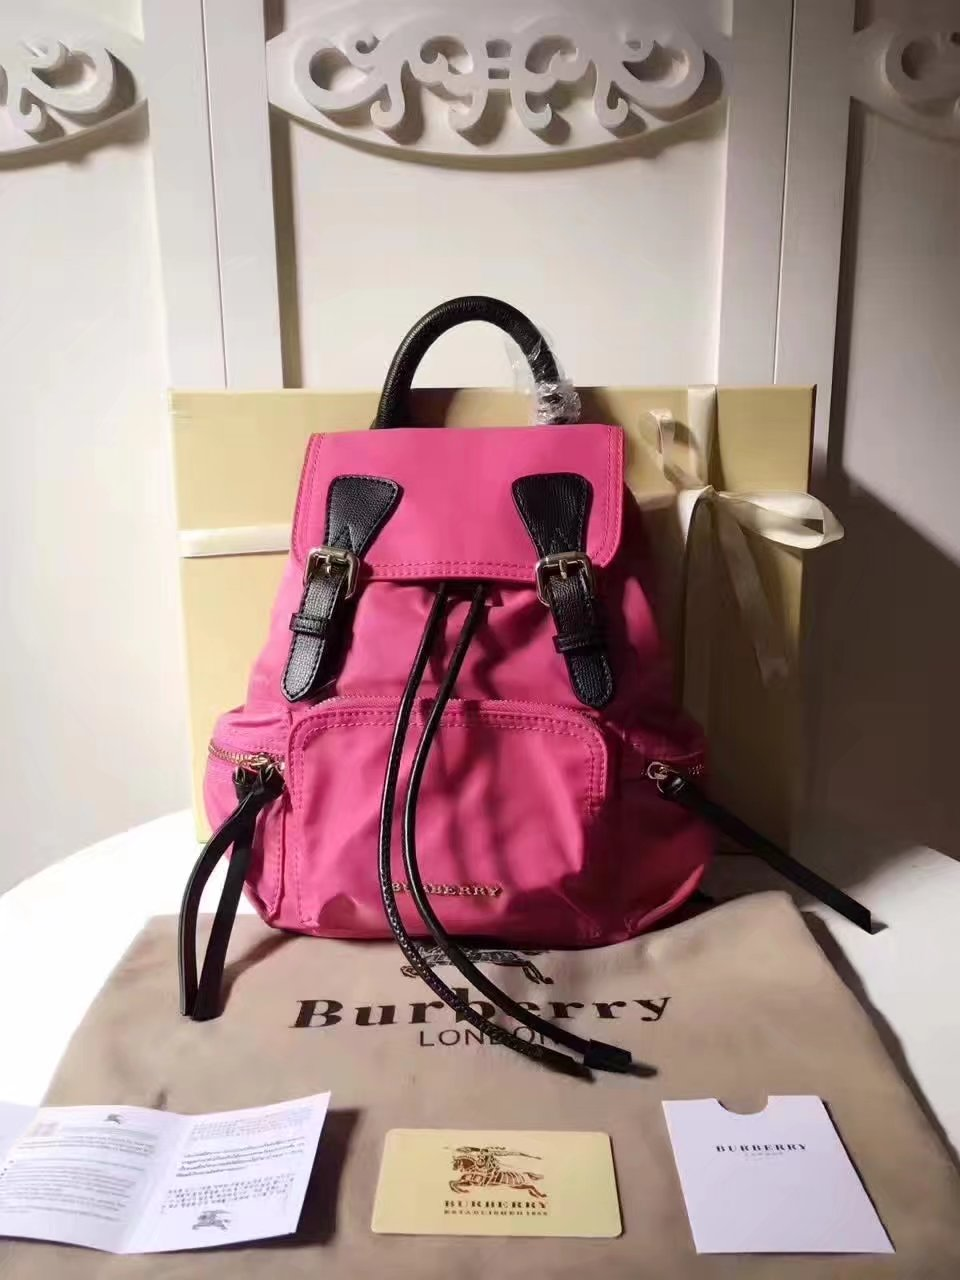 Burberry 66171 The Medium Pink Rucksack in Technical Nylon and Leather